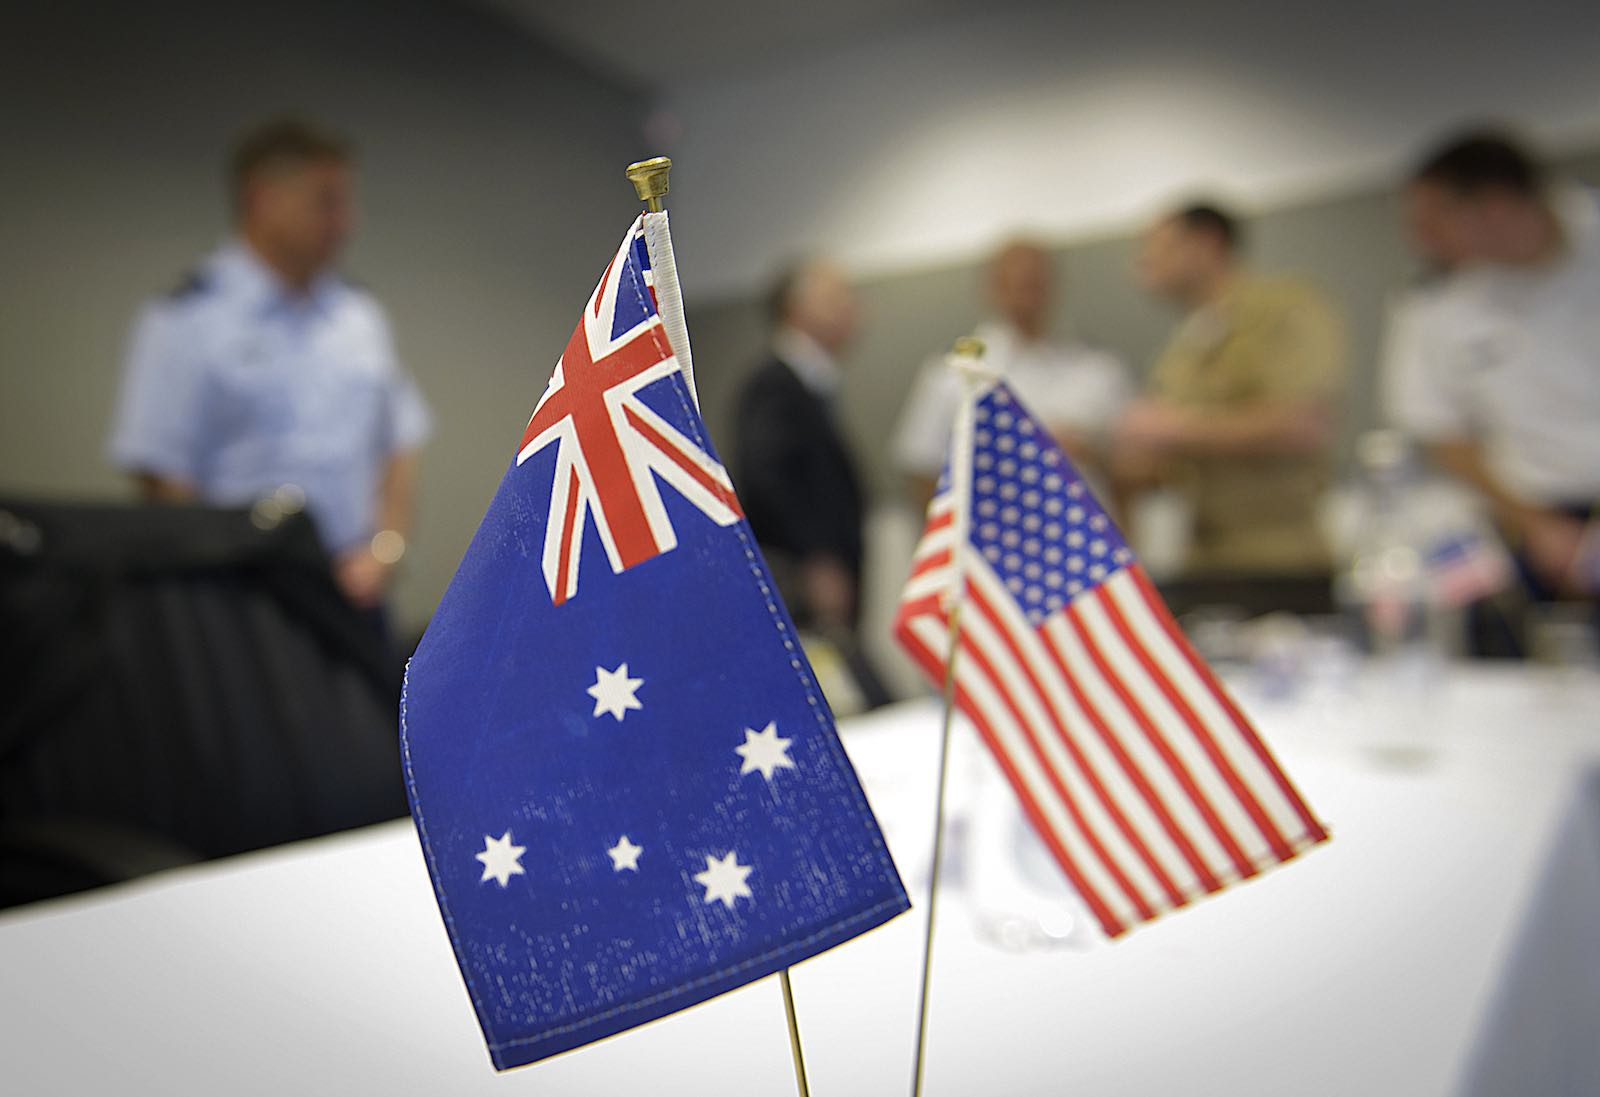 Washington needs Australia to be a leader in strategic thinking about the Indo-Pacific region (Photo: Chairman of the Joint Chiefs of Staff/Flickr)